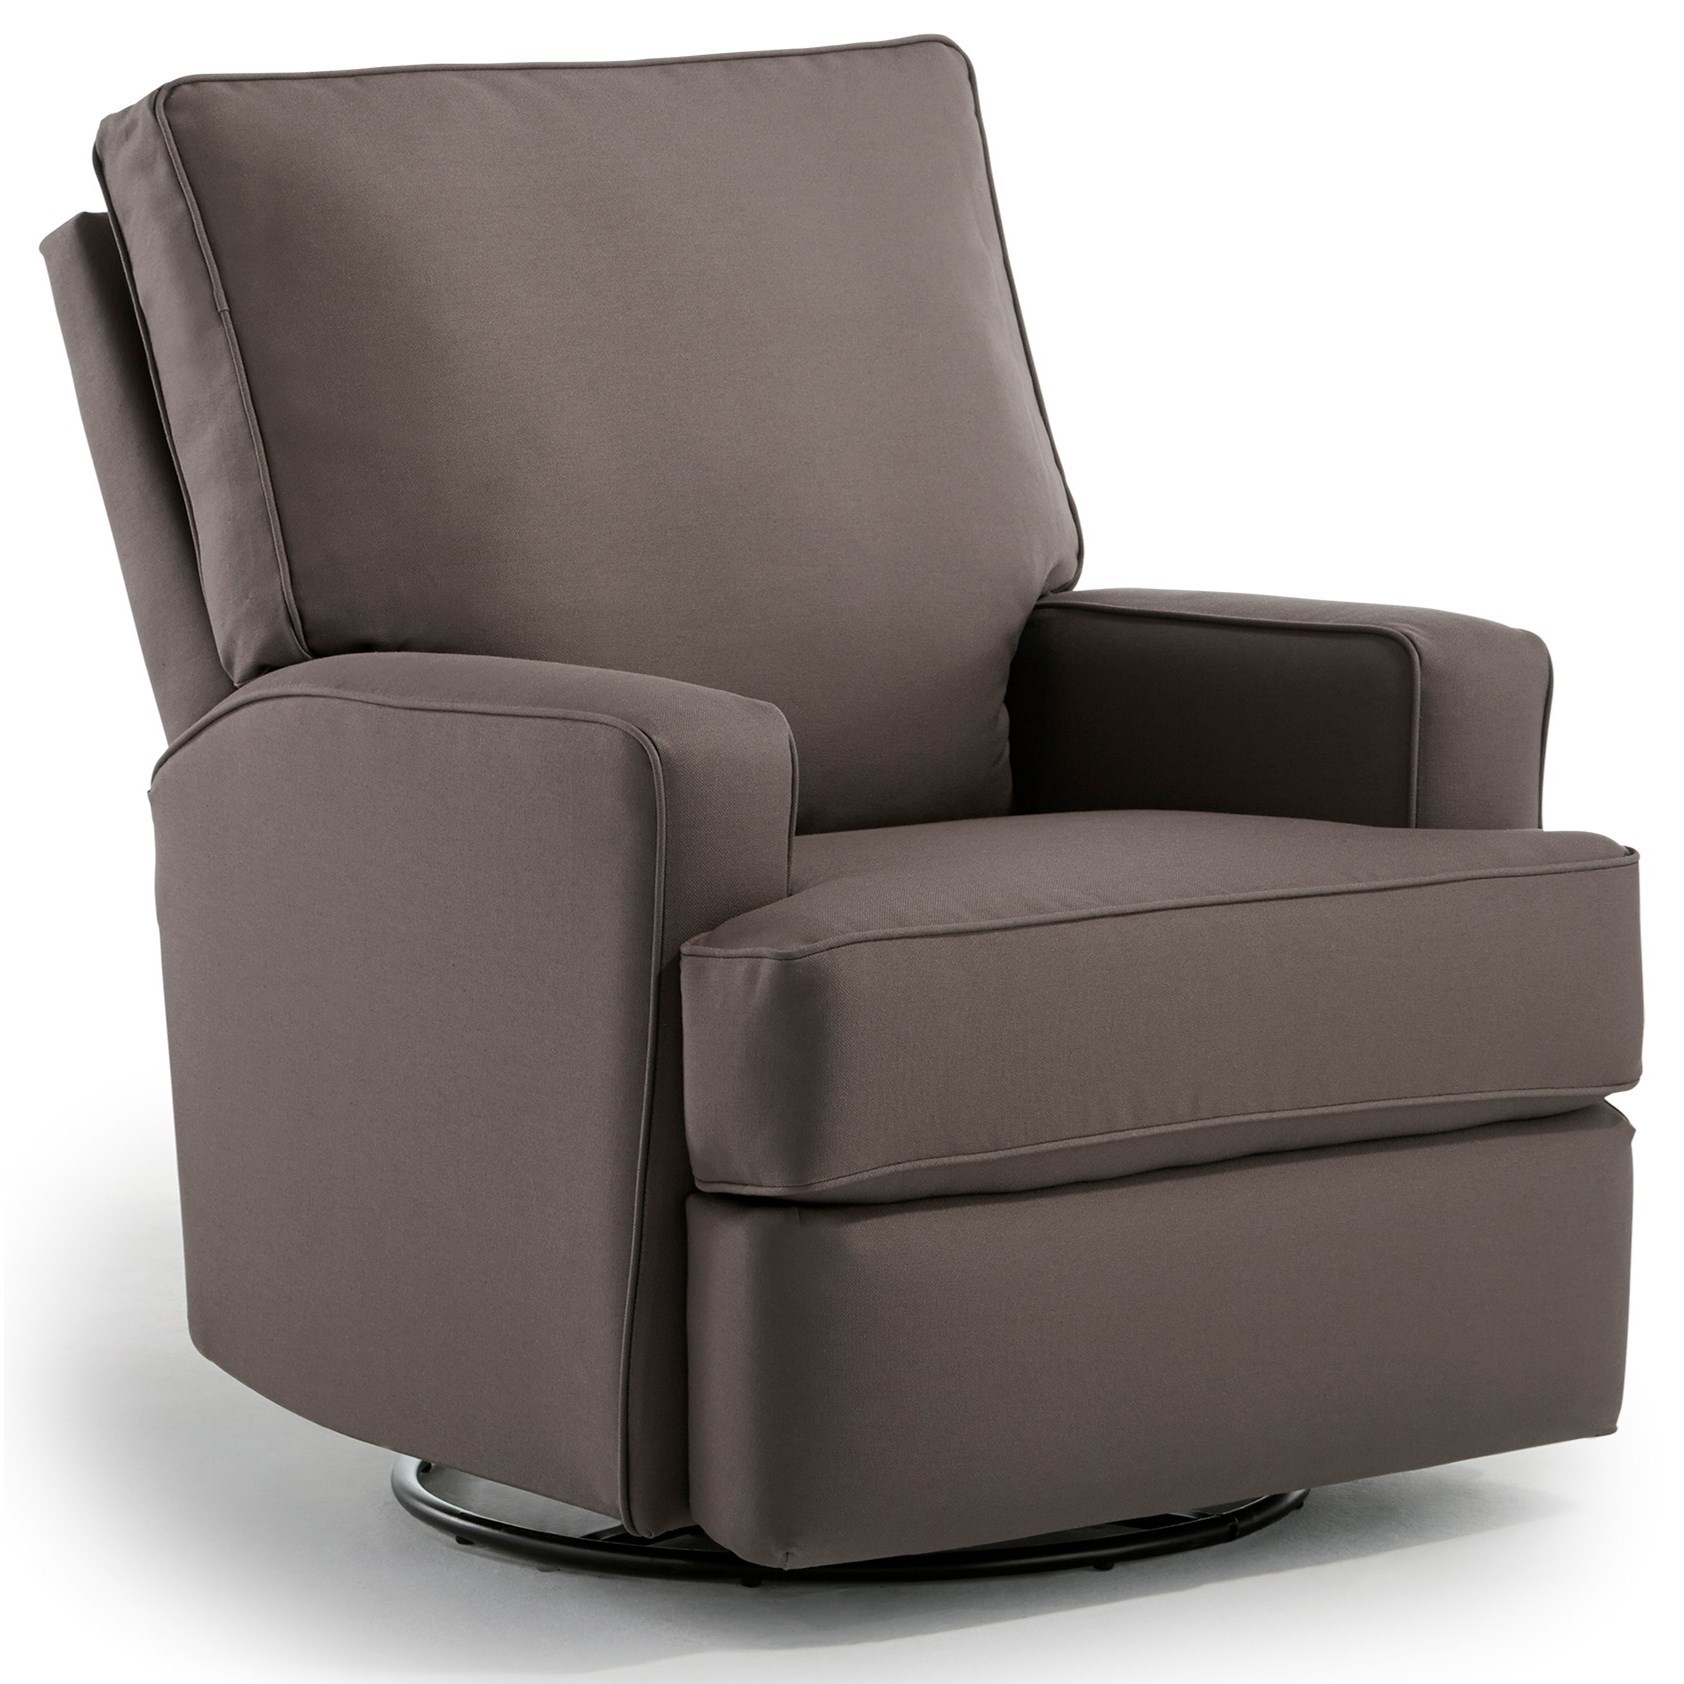 Kersey Swivel Glider Recliner w/ Inside Handle by Best Home Furnishings at Walker's Furniture